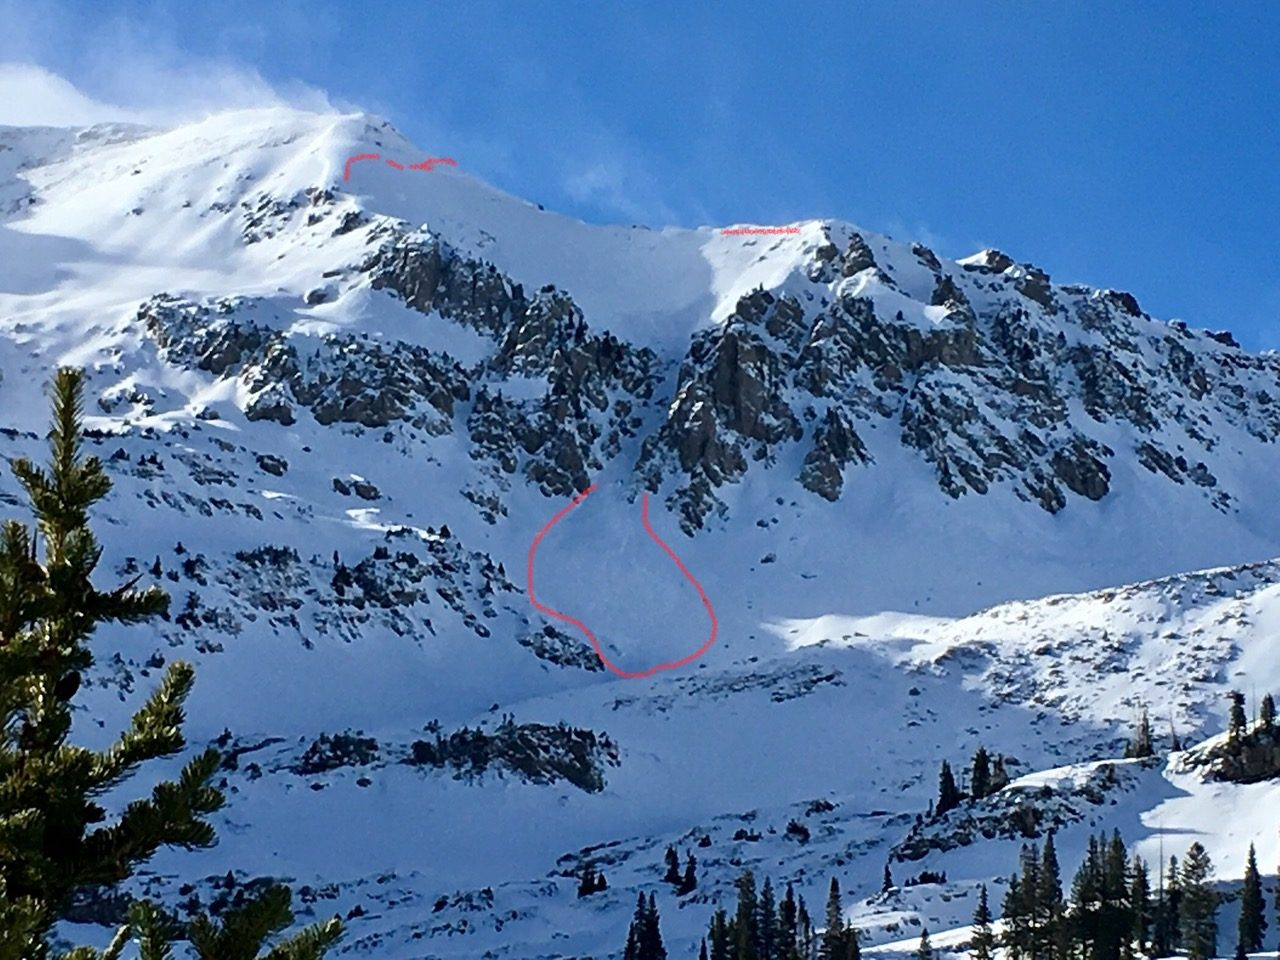 Observed Avalanche